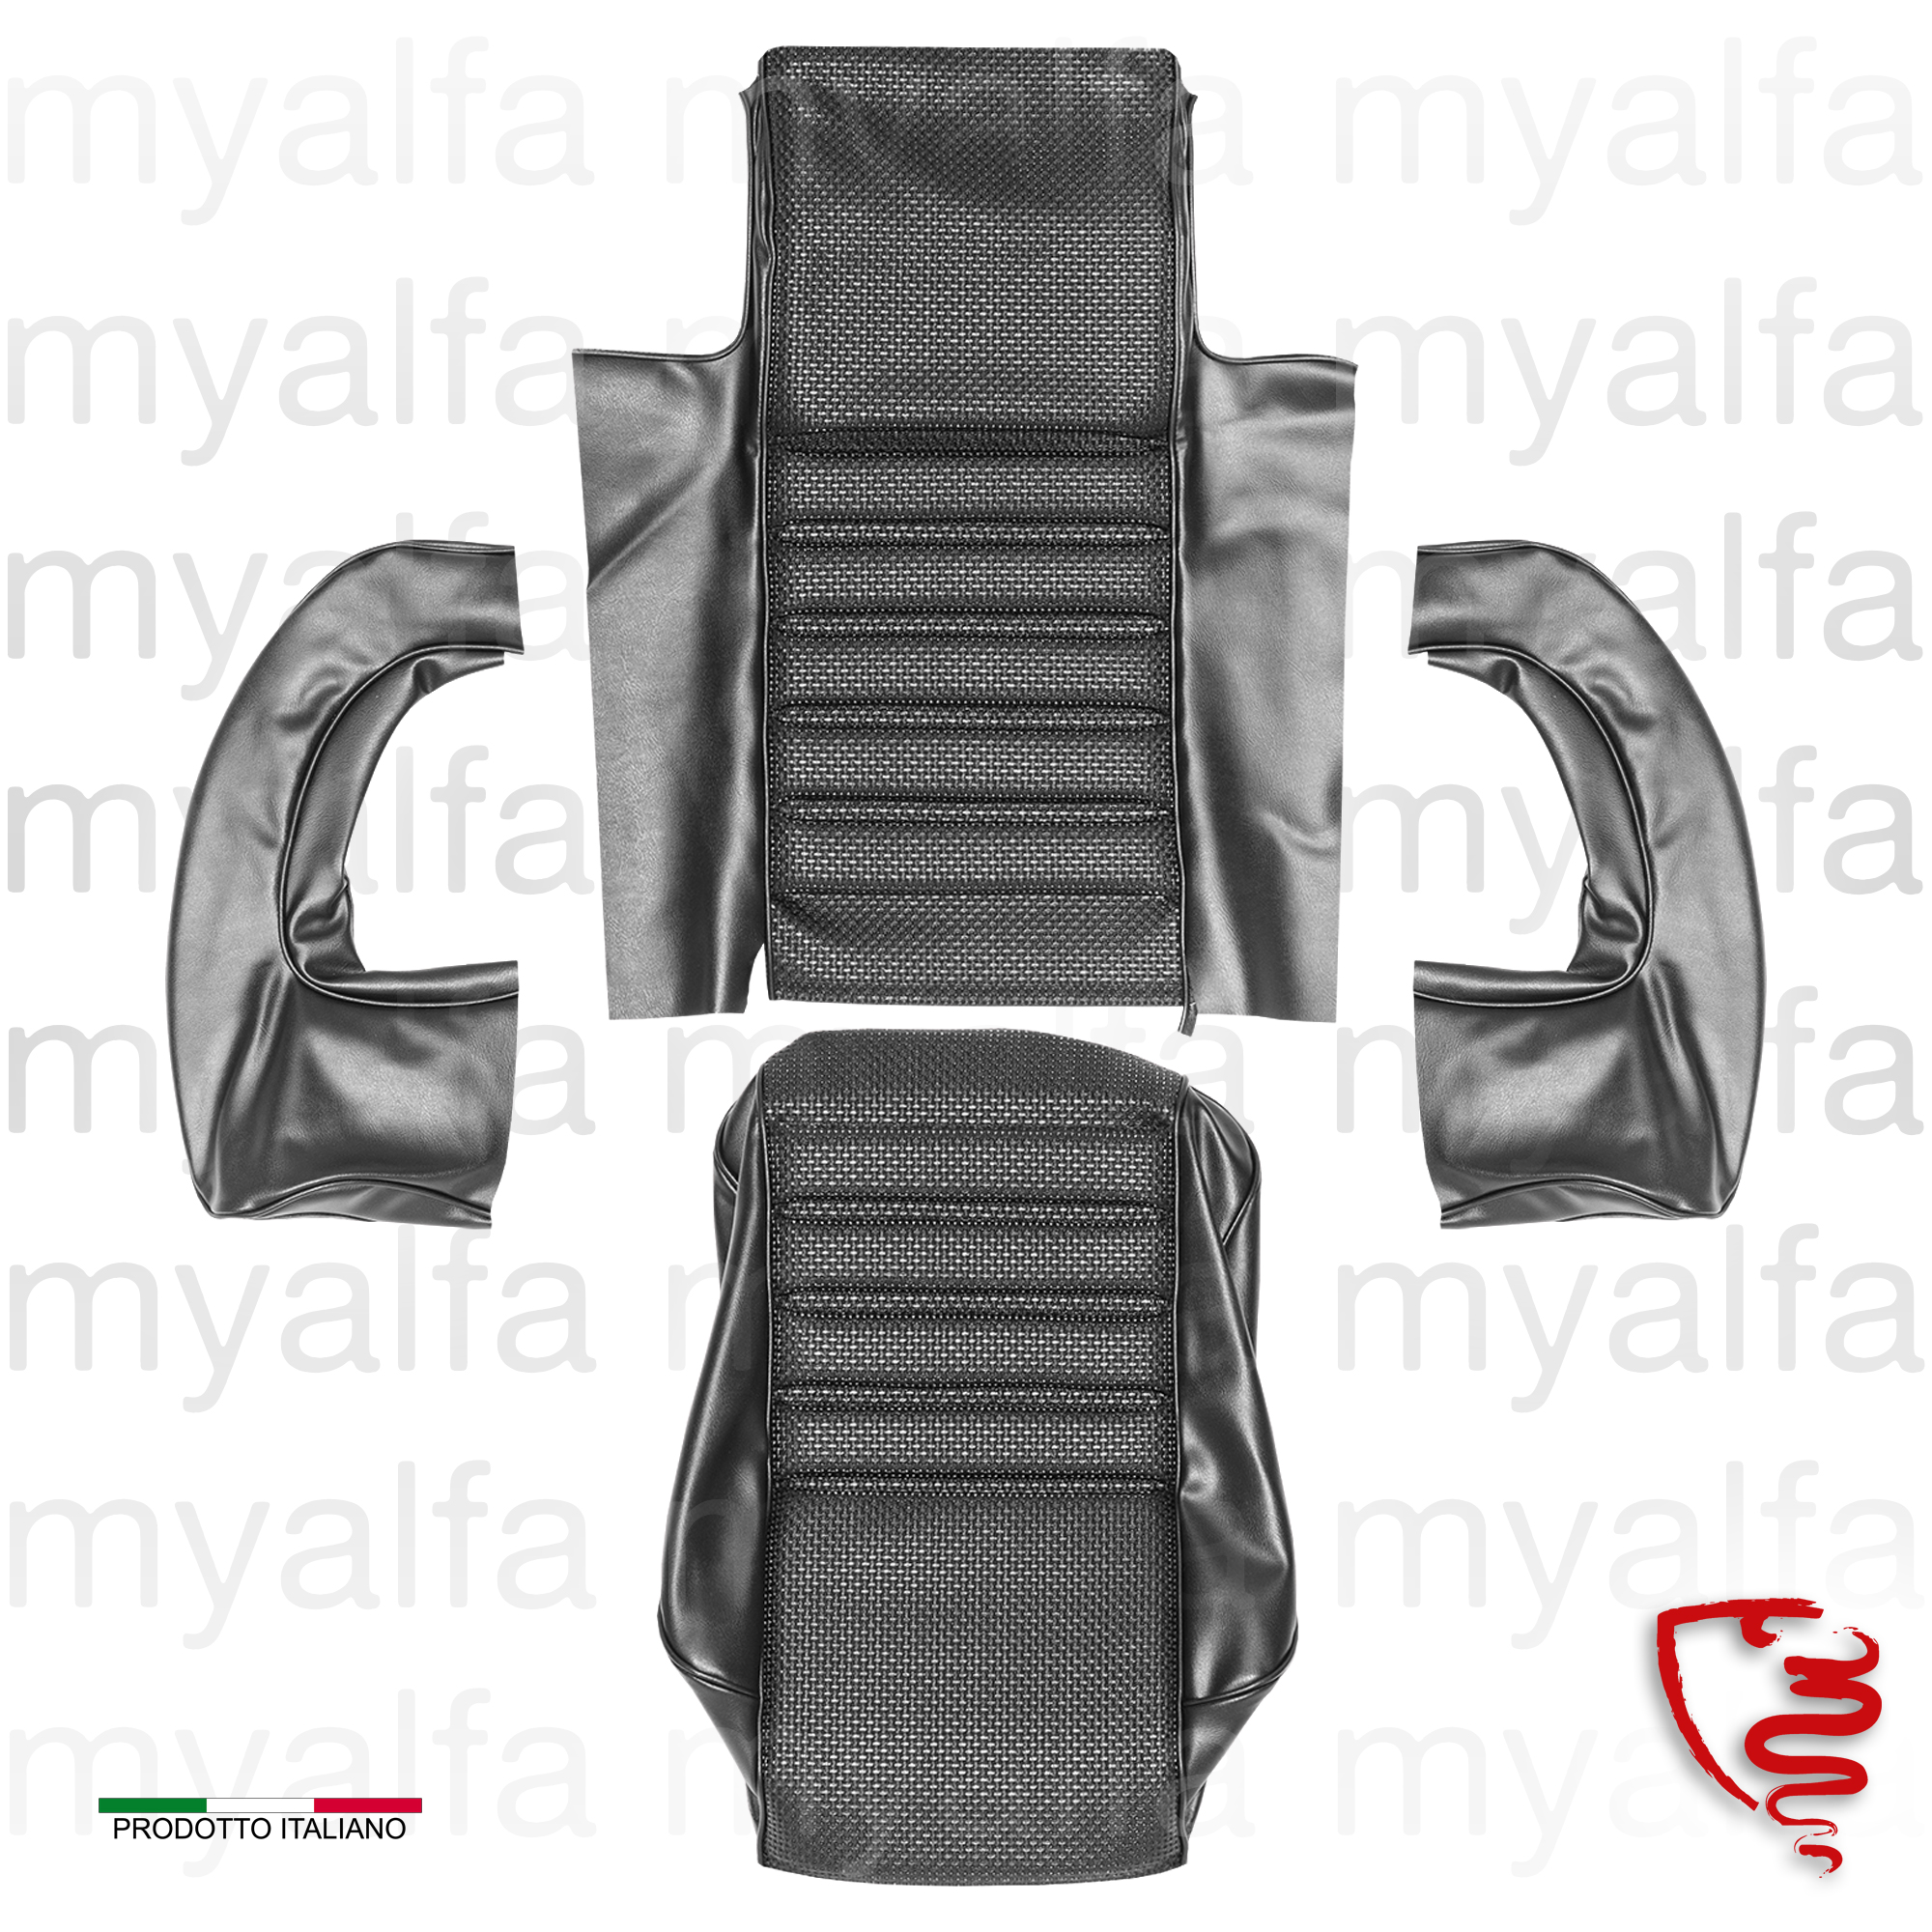 Covers front left seat. 1750 GTV 1st series - Black for 105/115, Coupe, 1750, Interior, Seats, Seat covers